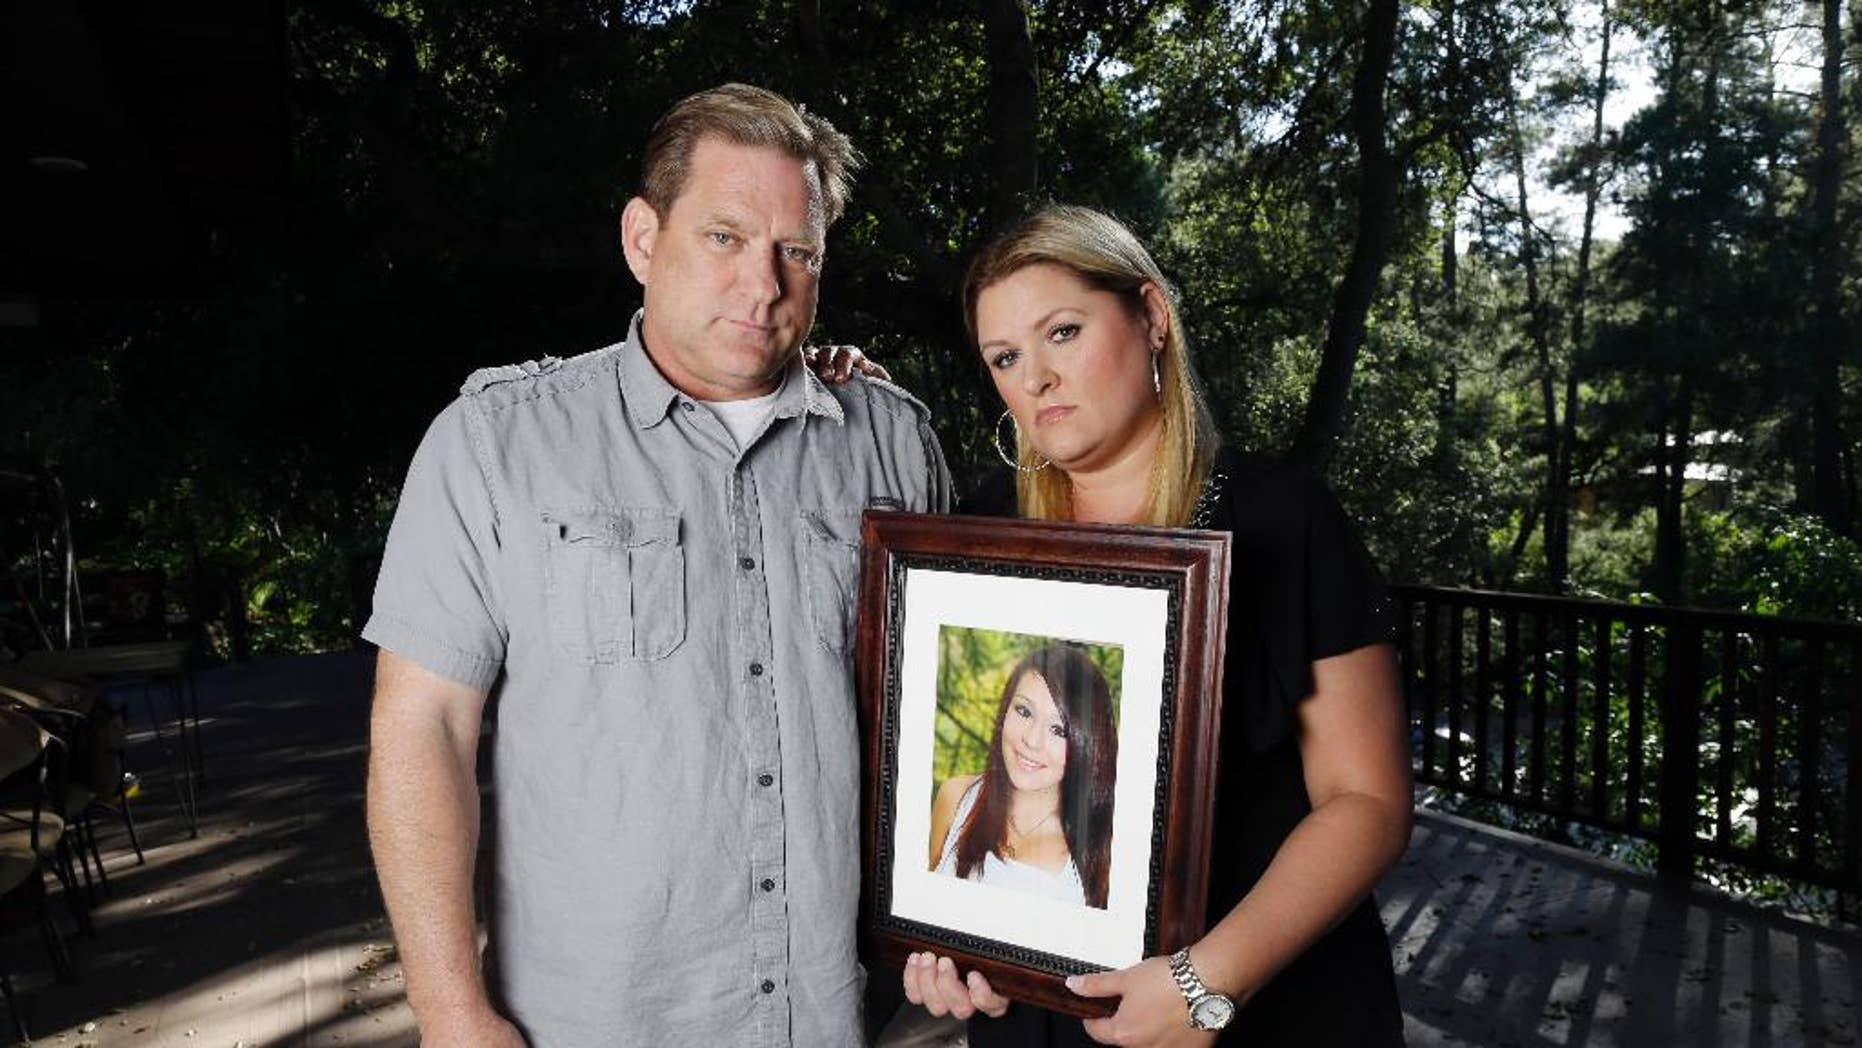 File - In this May 22, 2013 file photo, Larry Pott, left, and his wife Lisa pose for a portrait holding a picture of their daughter Audrie in Saratoga, Calif. Audrie Pott committed suicide in September 2012 after being sexually assaulted by three boys during a house party in Saratoga. (AP Photo/Marcio Jose Sanchez, file)